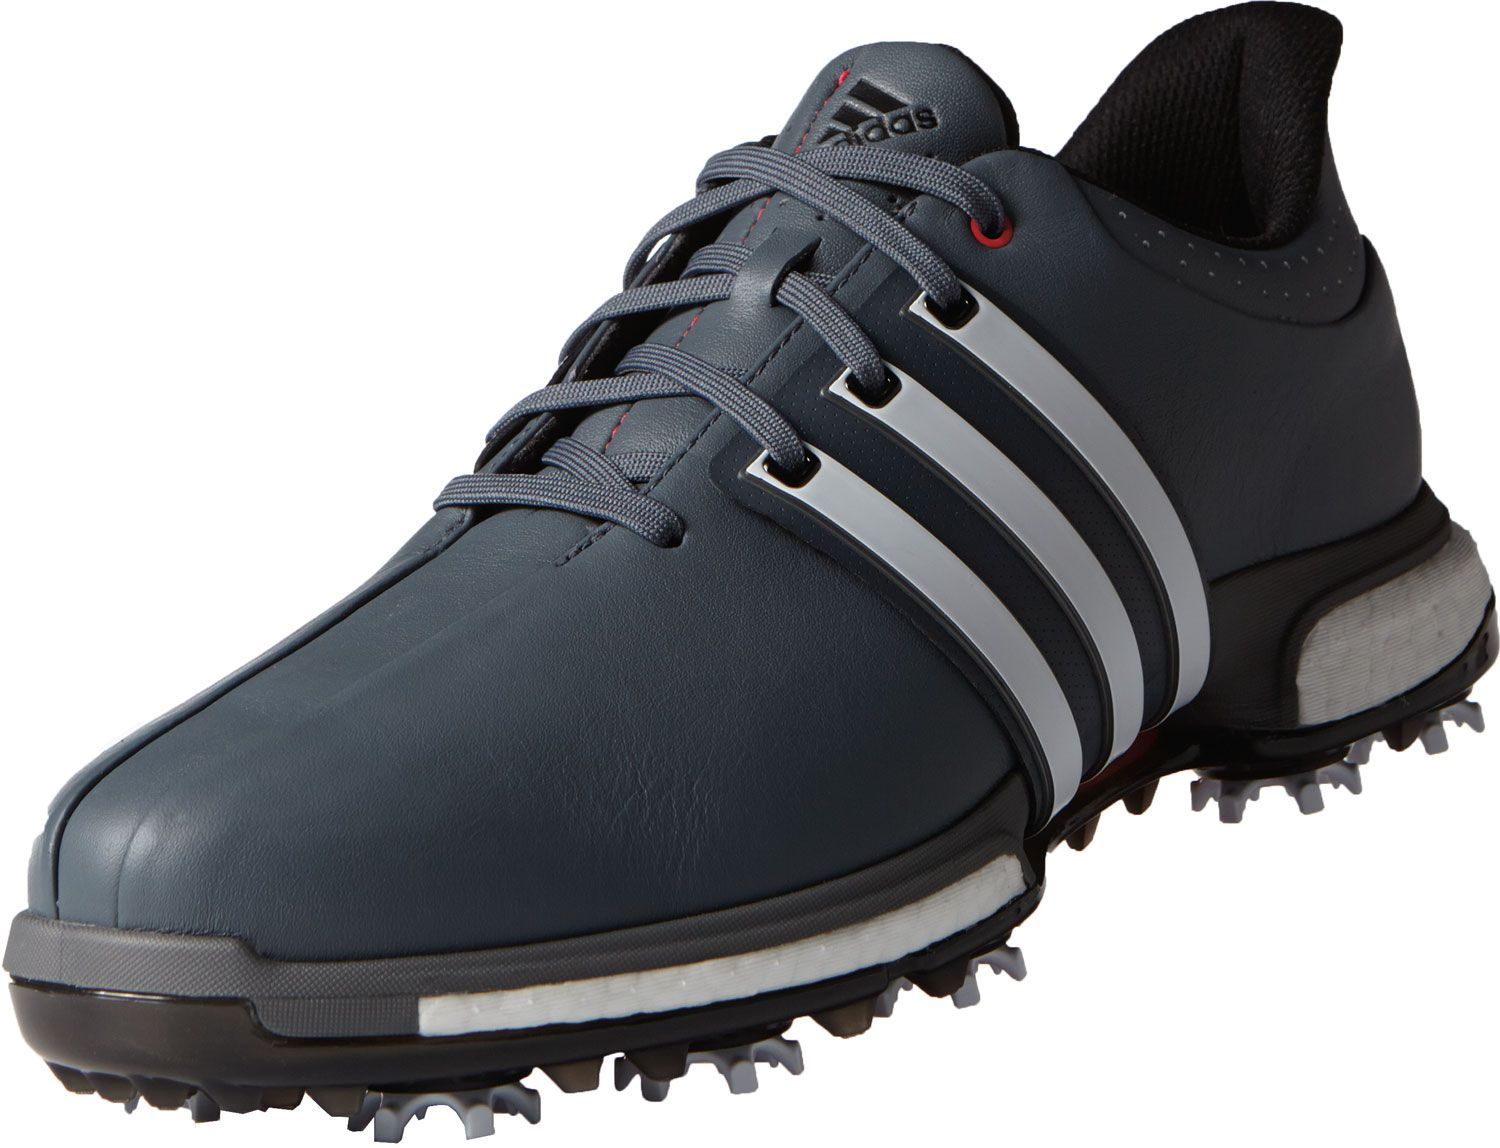 351bb51994e15e Adidas Tour 360 Boost Golf Shoes 2016 Mens New - Choose Color   Size! Boost  Golf Shoes